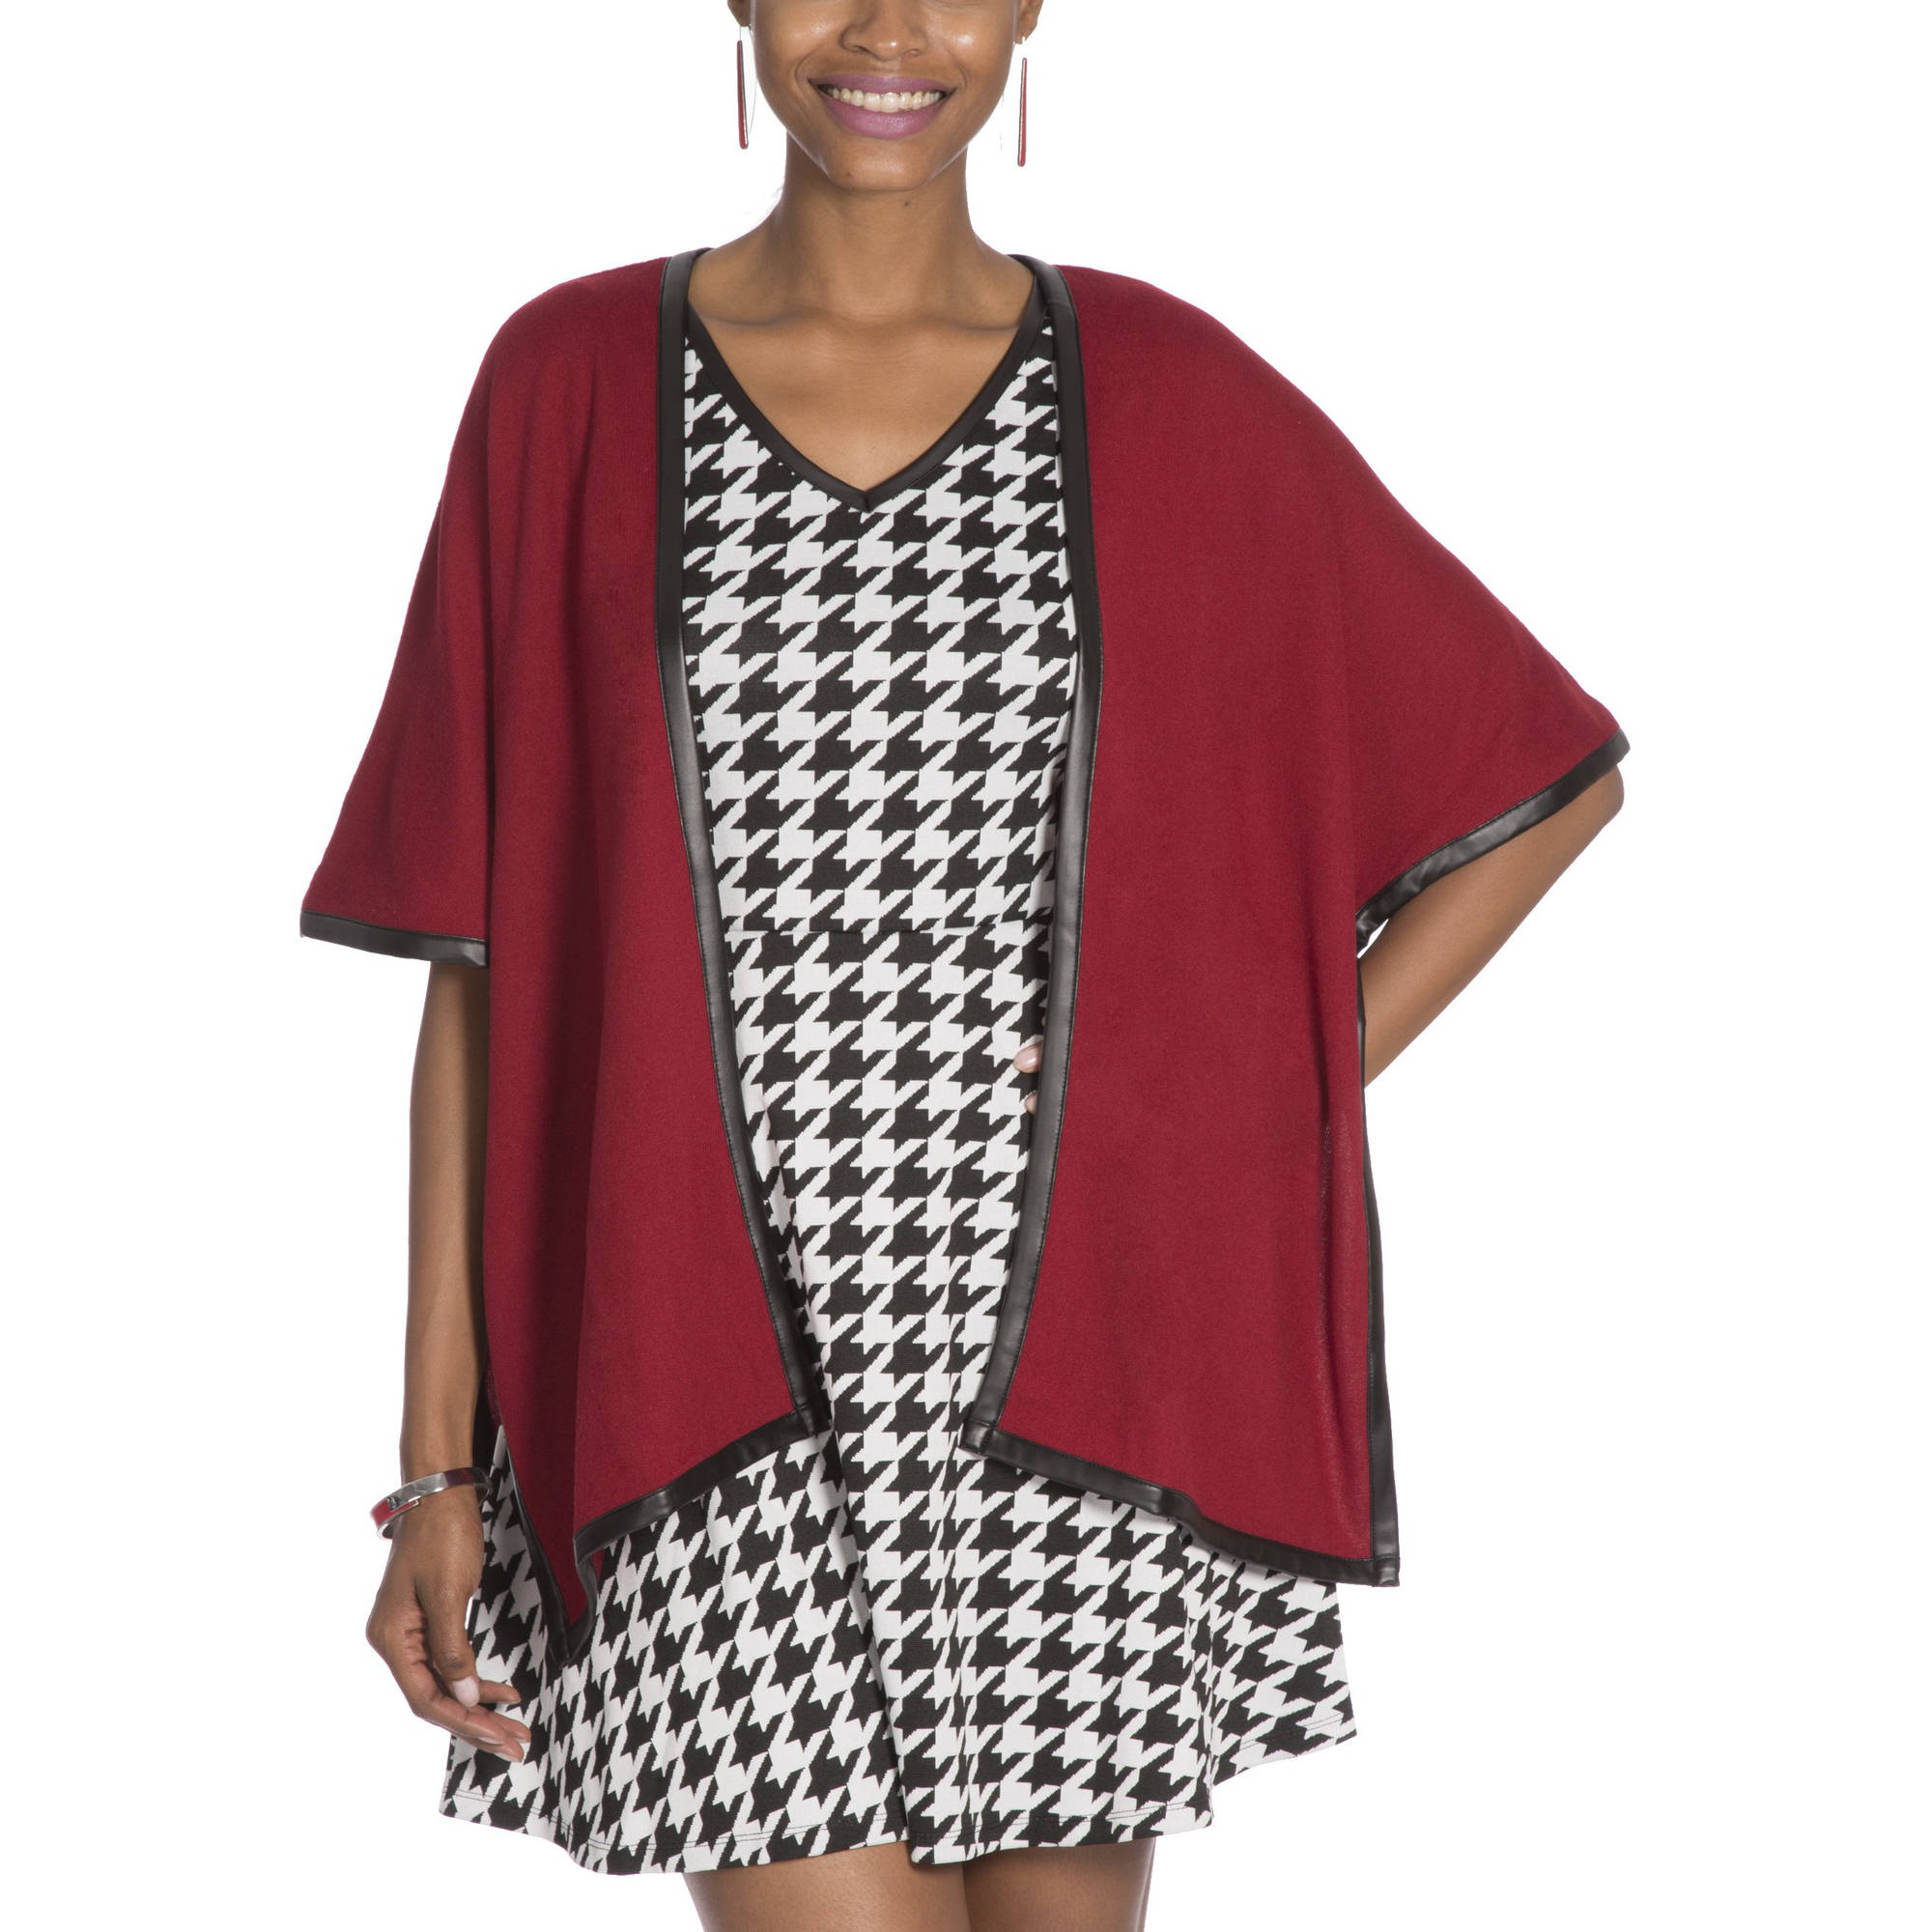 Moda Women's Faux Leather Trim Poncho